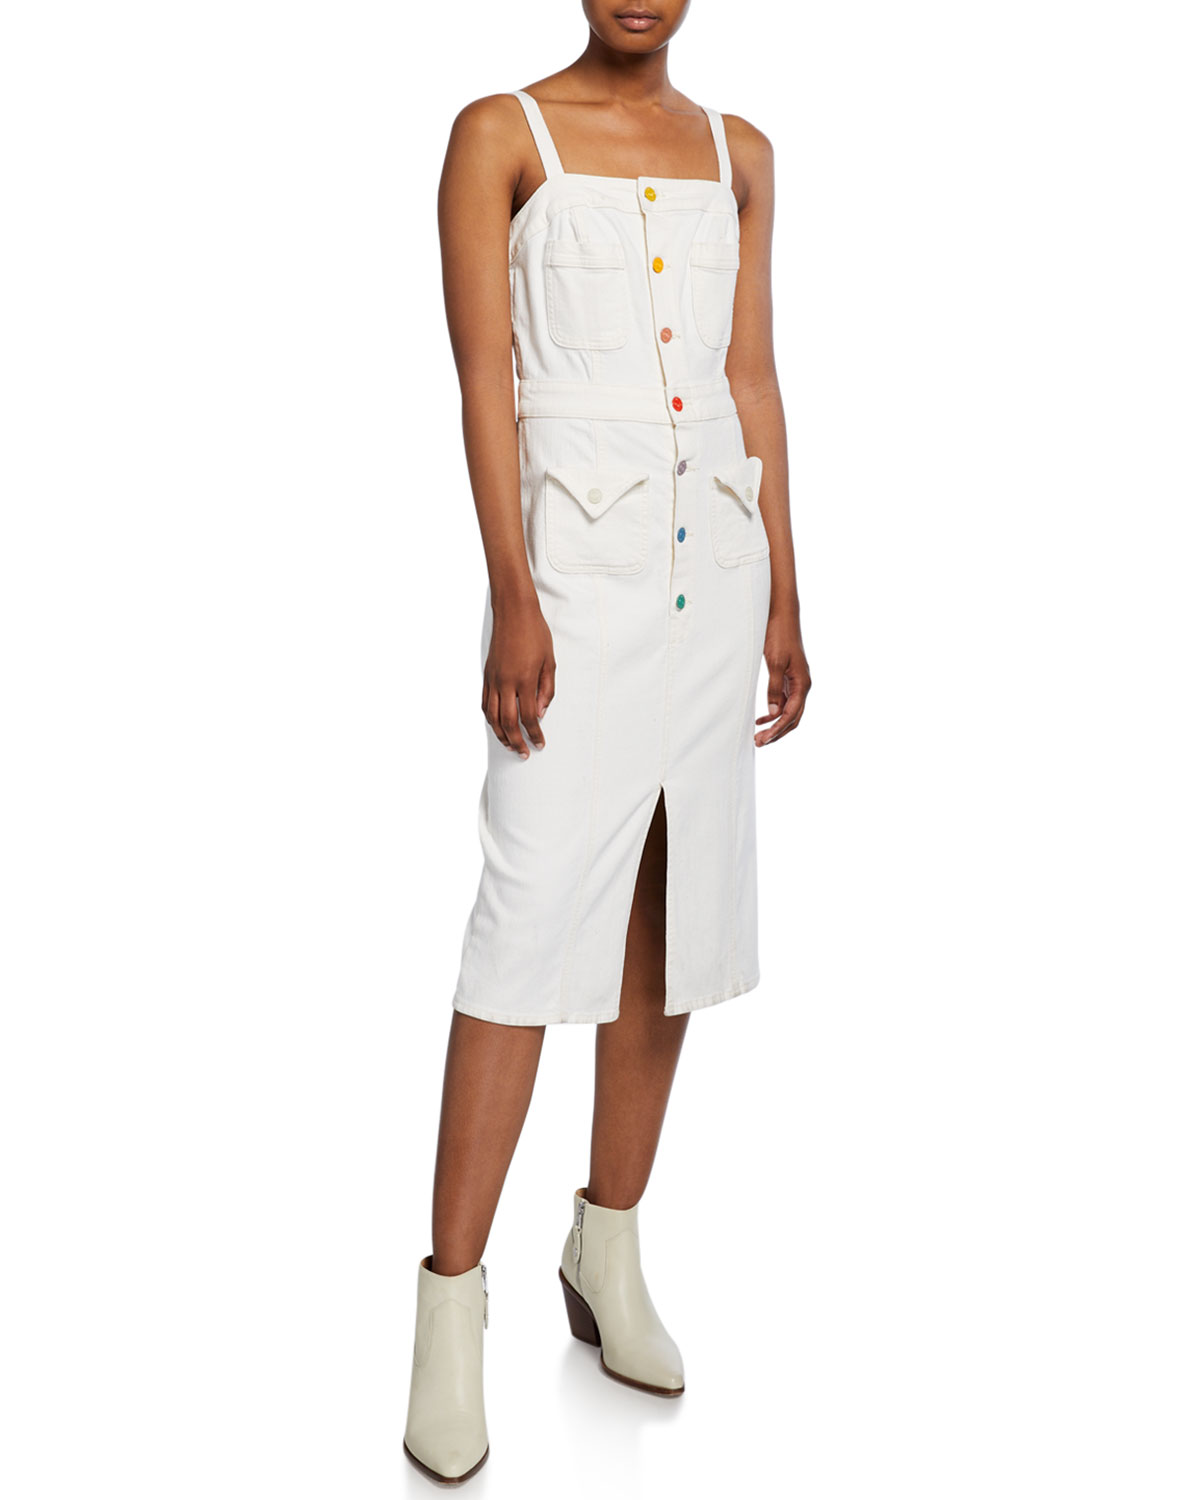 Mother Dresses TO THE POINT BUTTON-FRONT DRESS